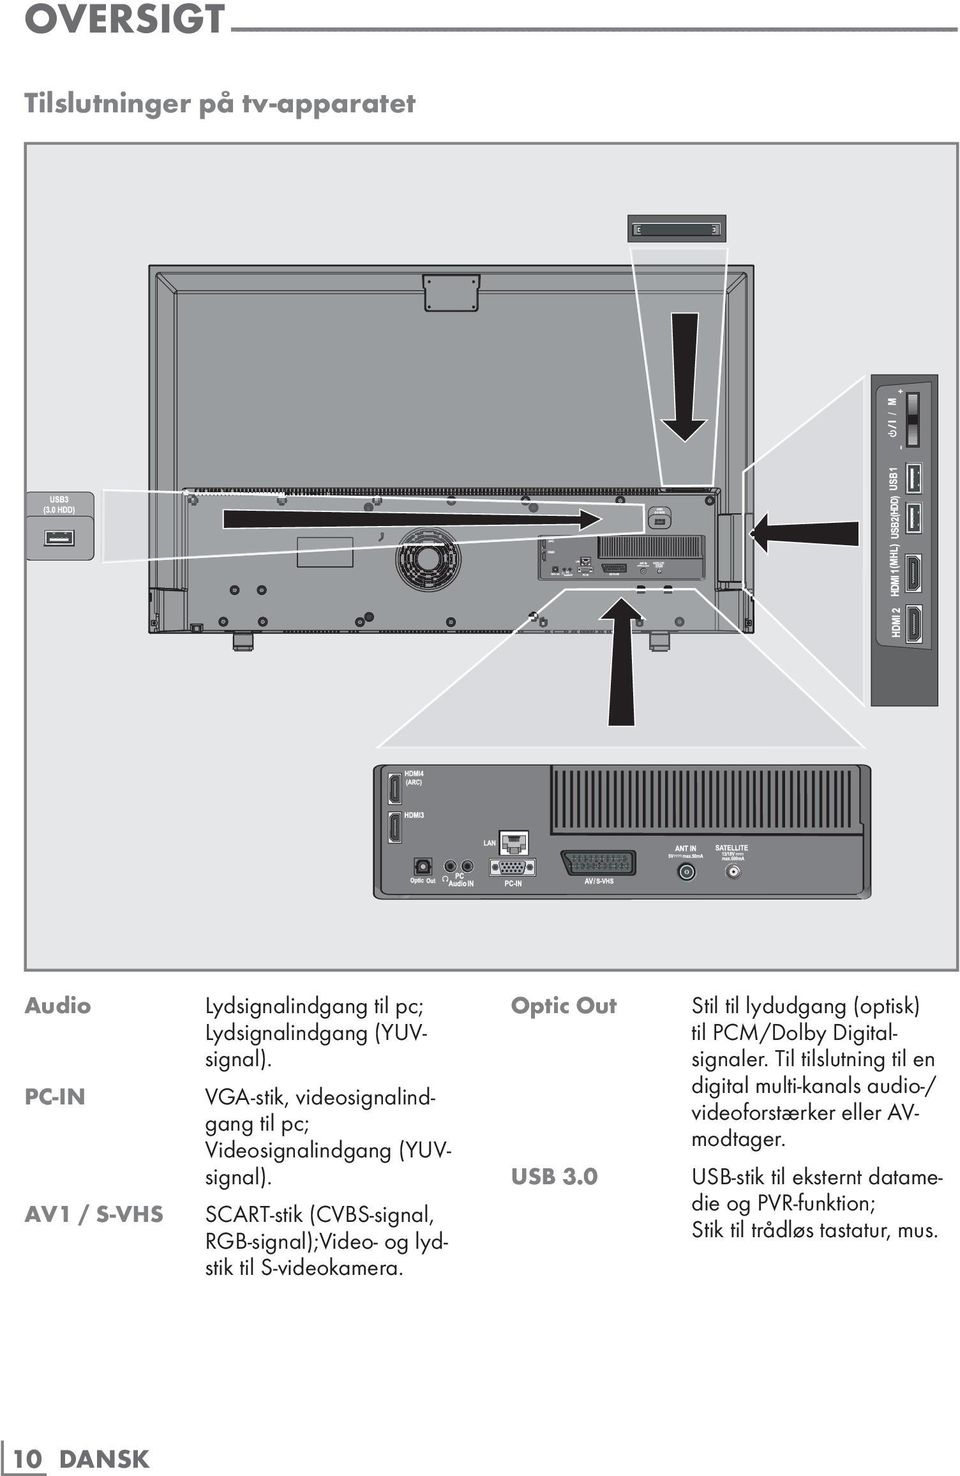 SCART-stik (CVBS-signal, RGB-signal);Video- og lydstik til S-videokamera. optic out UsB 3.0 Stil til lydudgang (optisk) til PCM/Dolby Digitalsignaler.